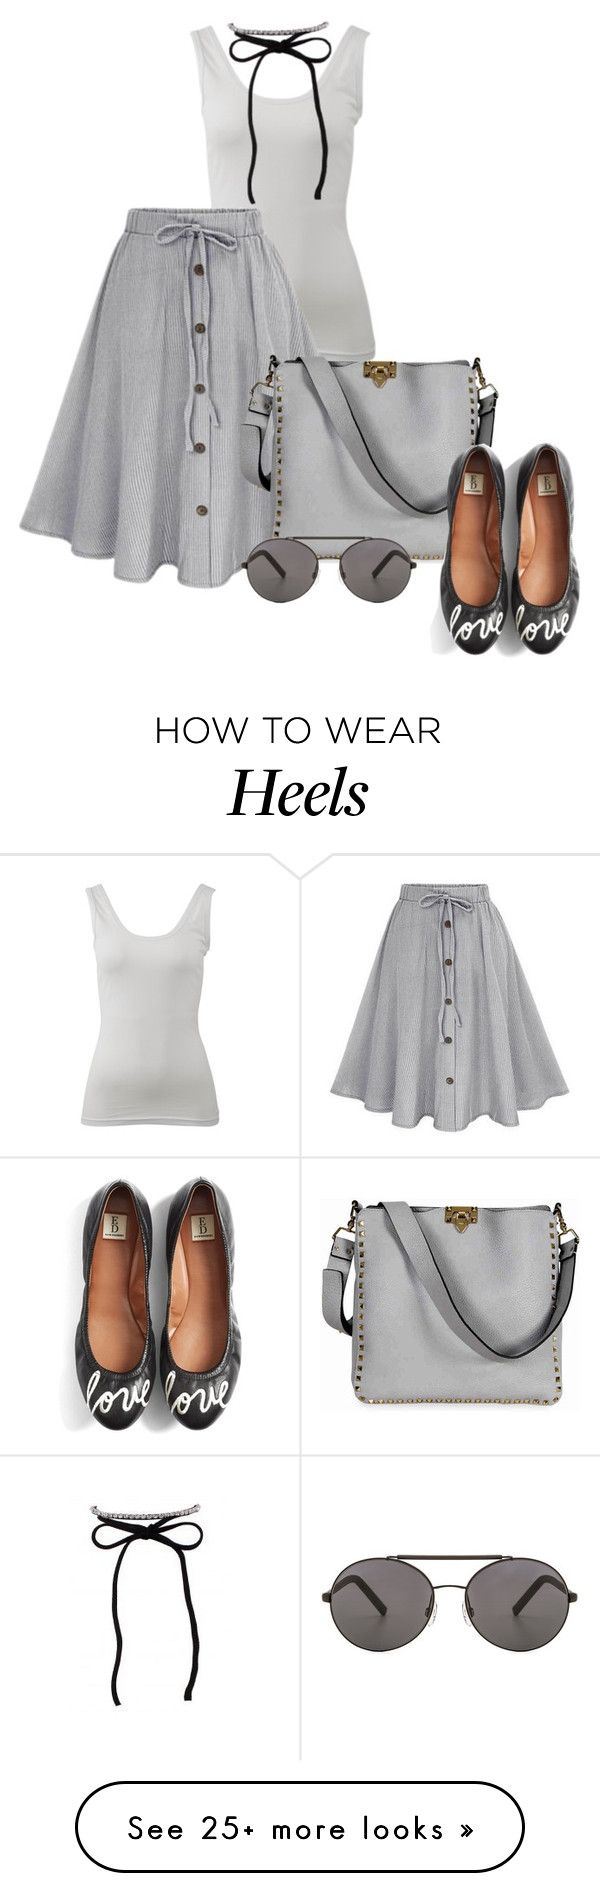 """Head over Heels"" by scandalicious on Polyvore featuring Betty Basics, Valentino, ED Ellen DeGeneres and Seafolly"